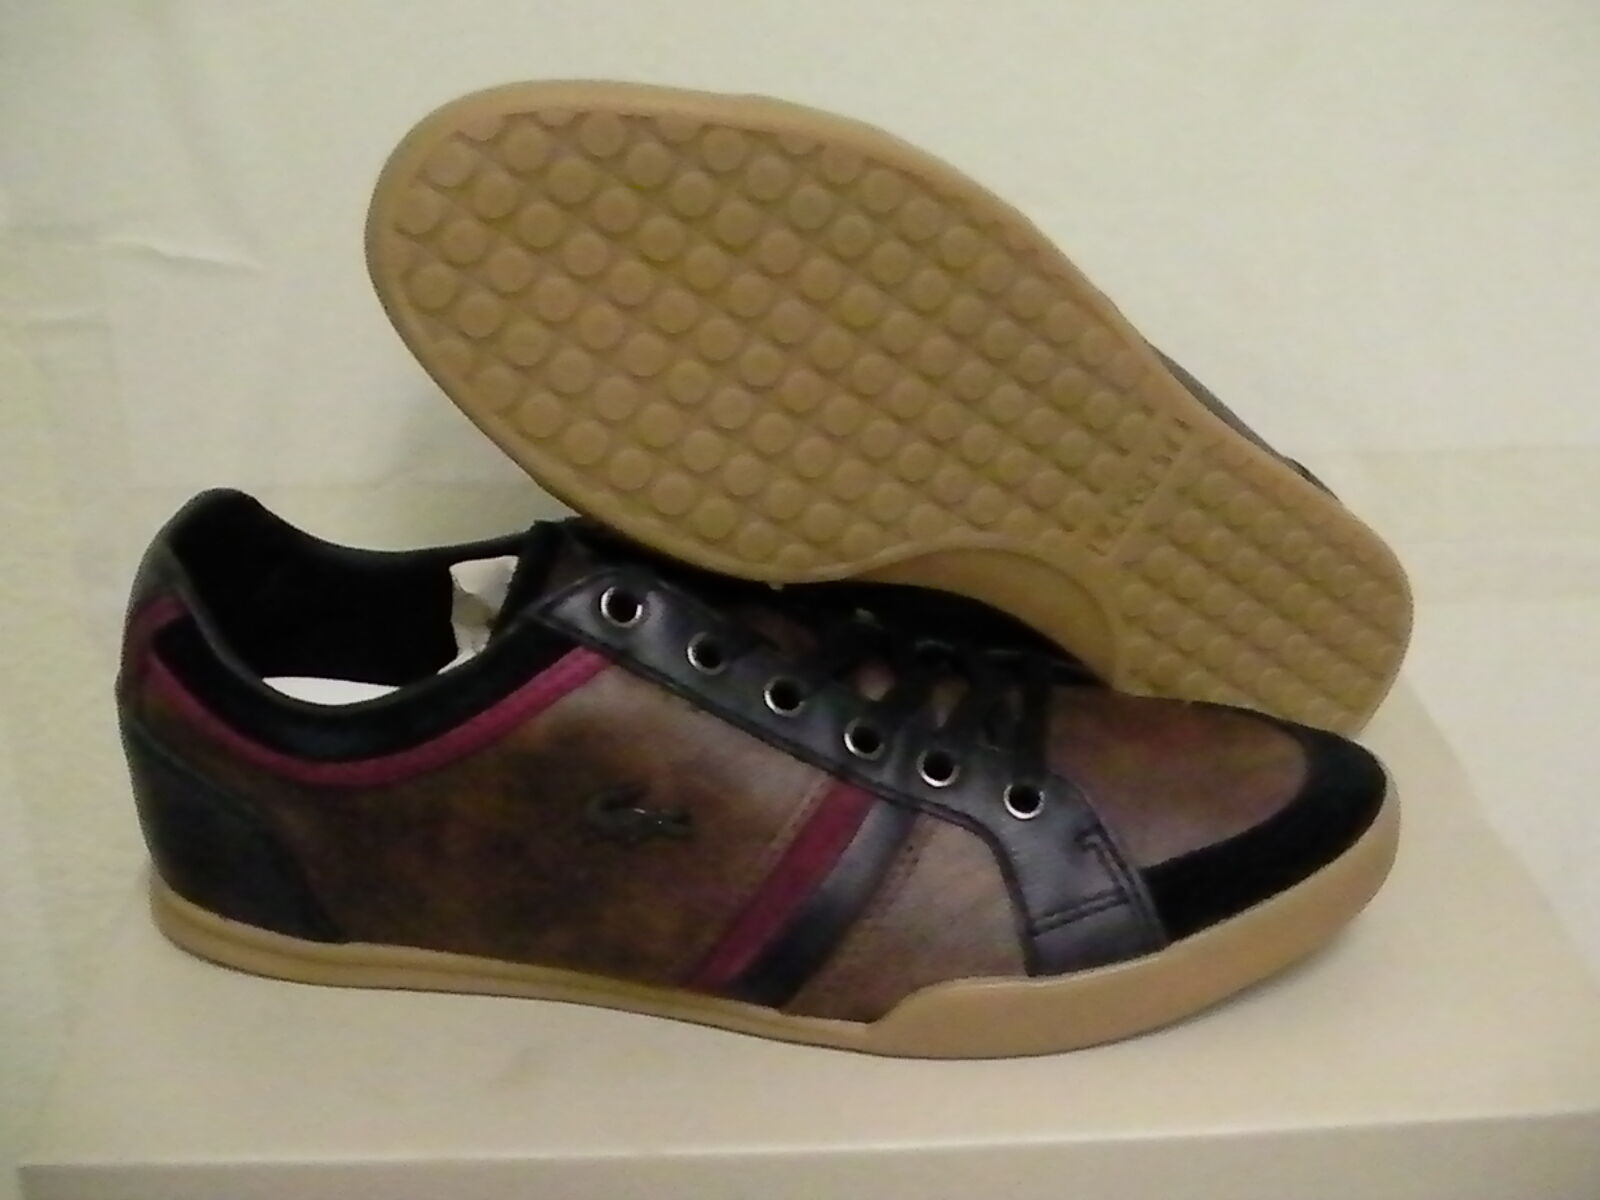 Lacoste casual shoes rayford 3 spm DK brown/DK red/ blak leather/suede size 7 us